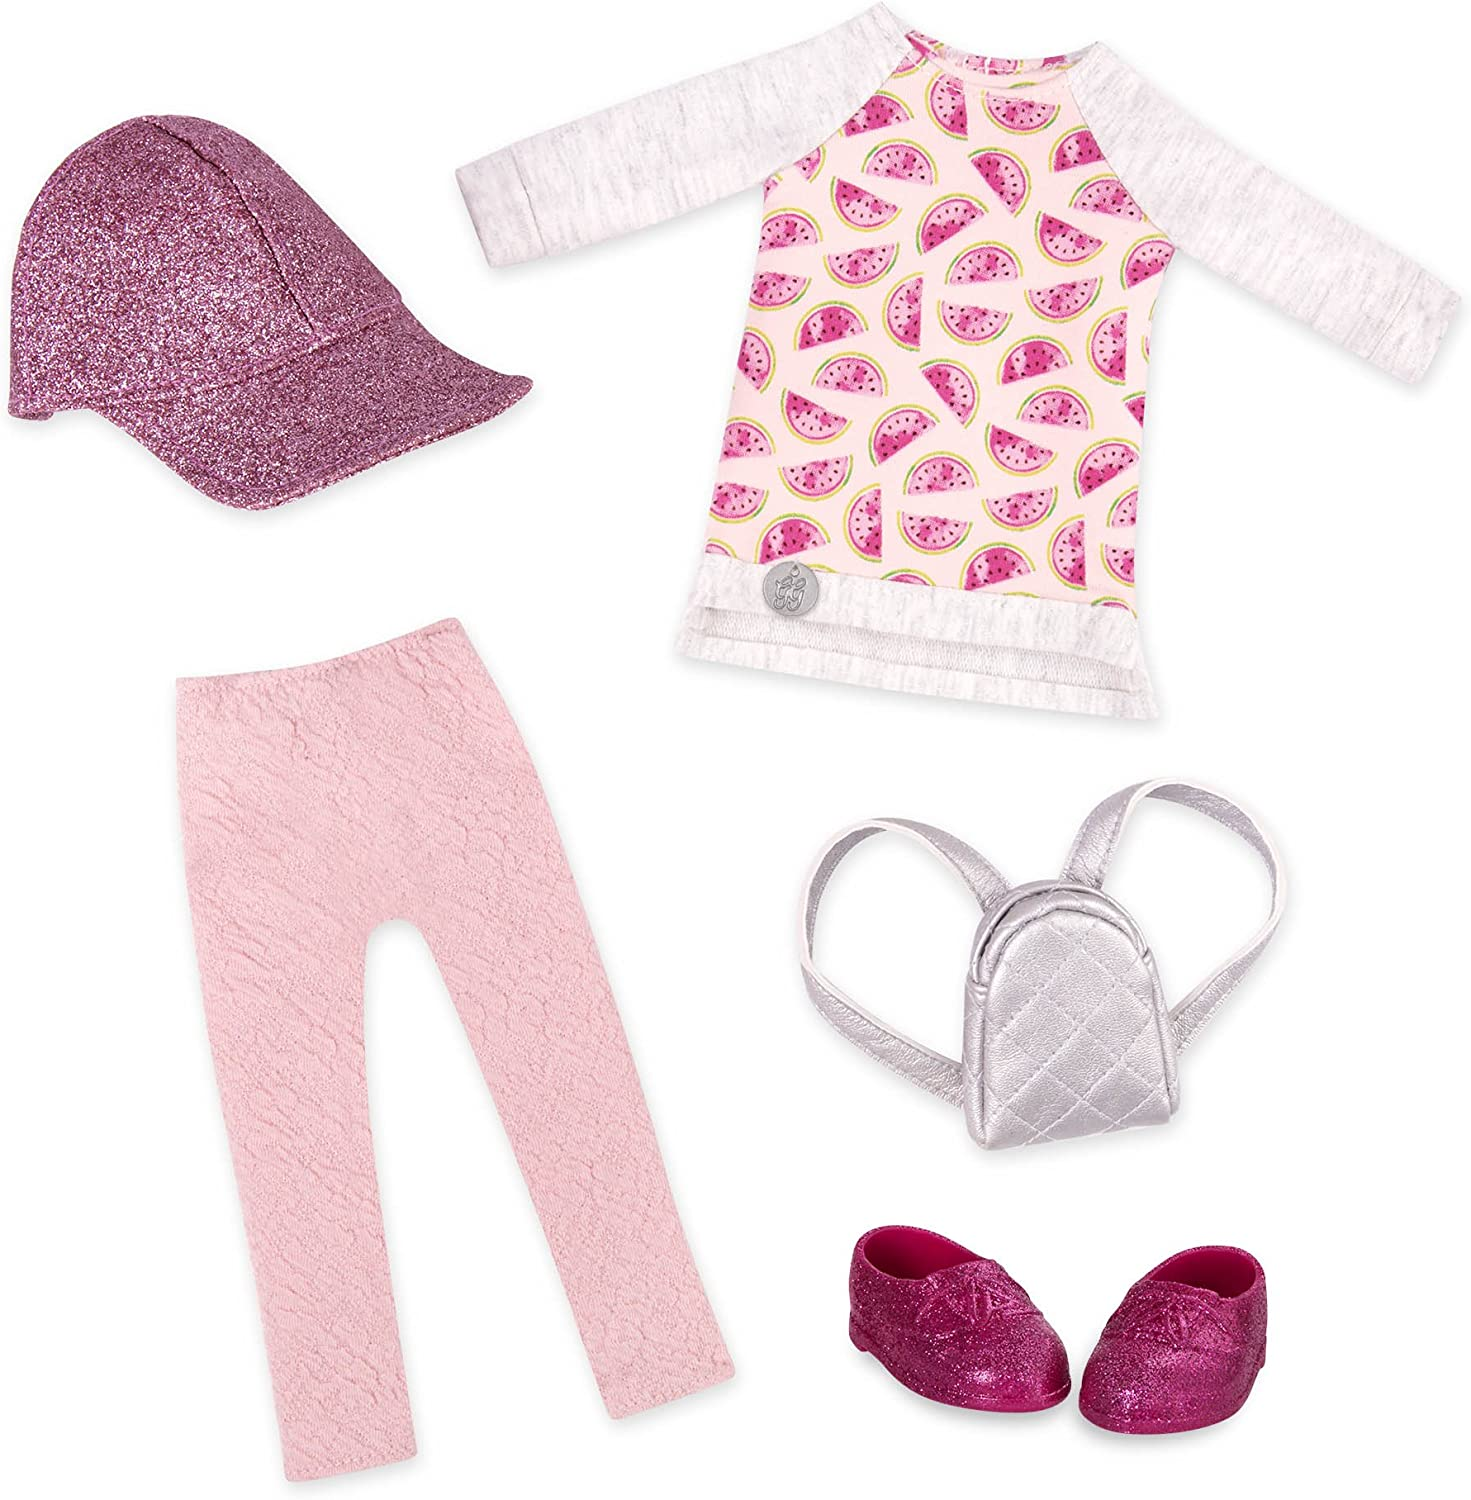 """Glitter Girls by Battat - Head To Toe Glimmer Tunic & Leggings Deluxe Outfit - 14"""" Doll Clothes & Accessories Toys"""